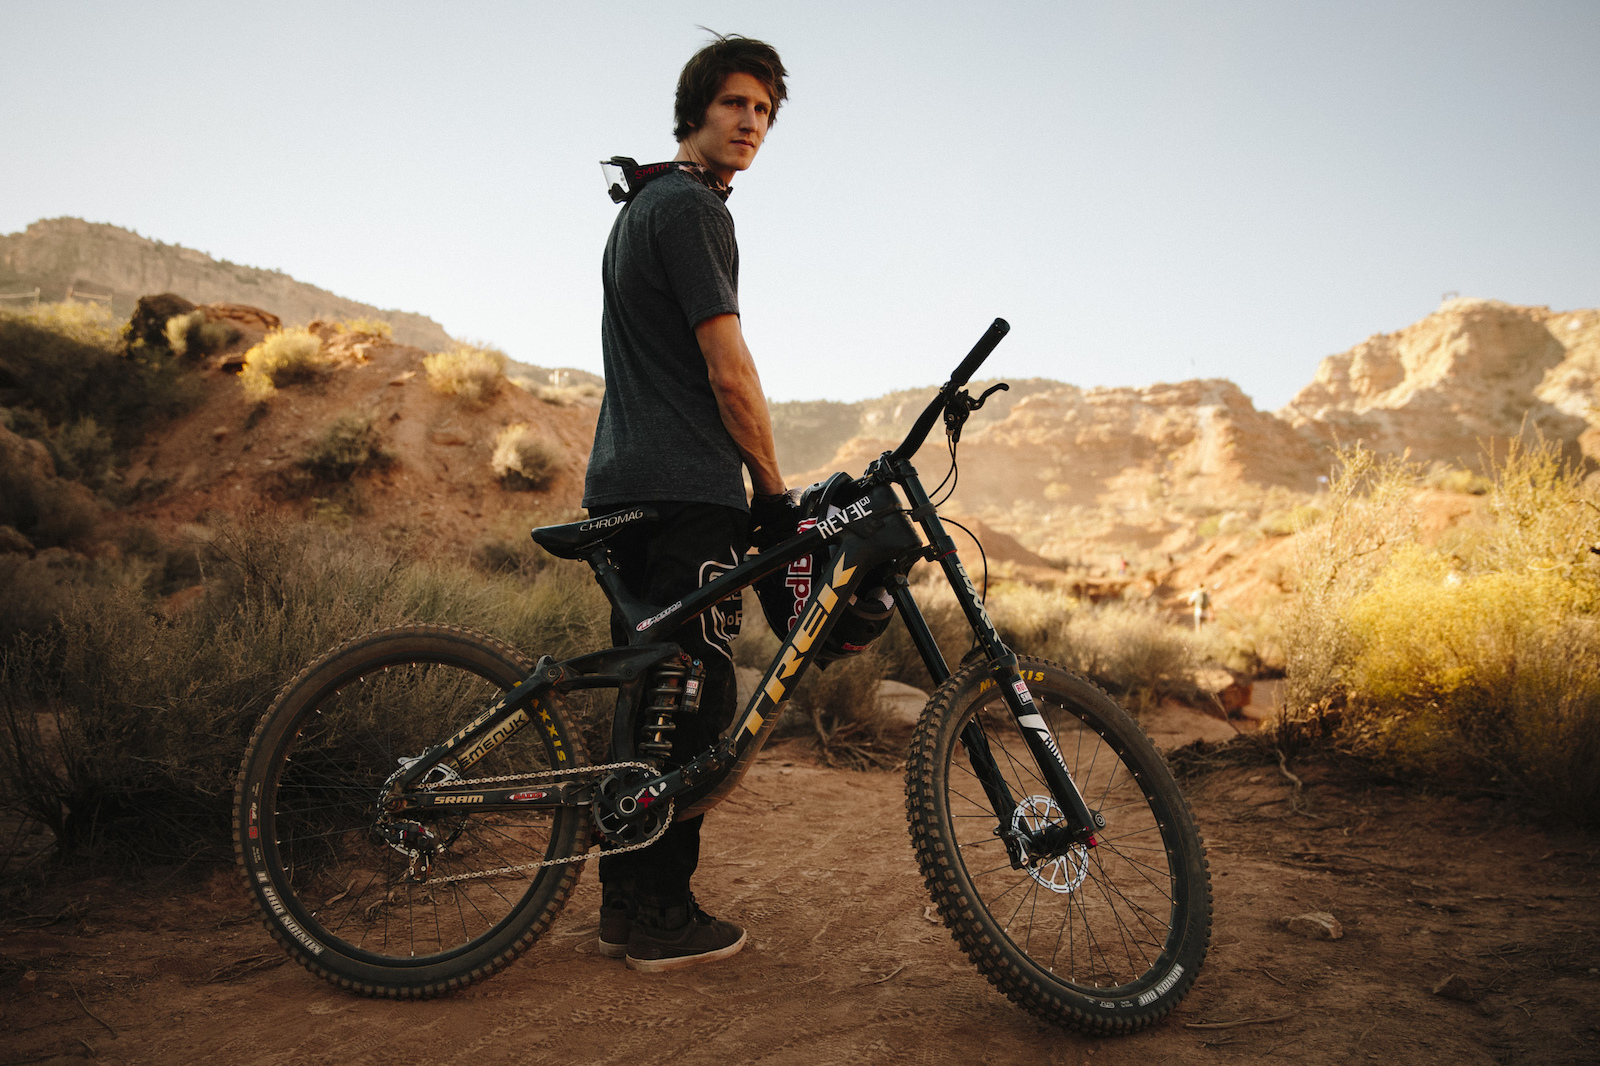 Brandon Semenuk at RedBull Rampage 2015 Virgin Utah USA